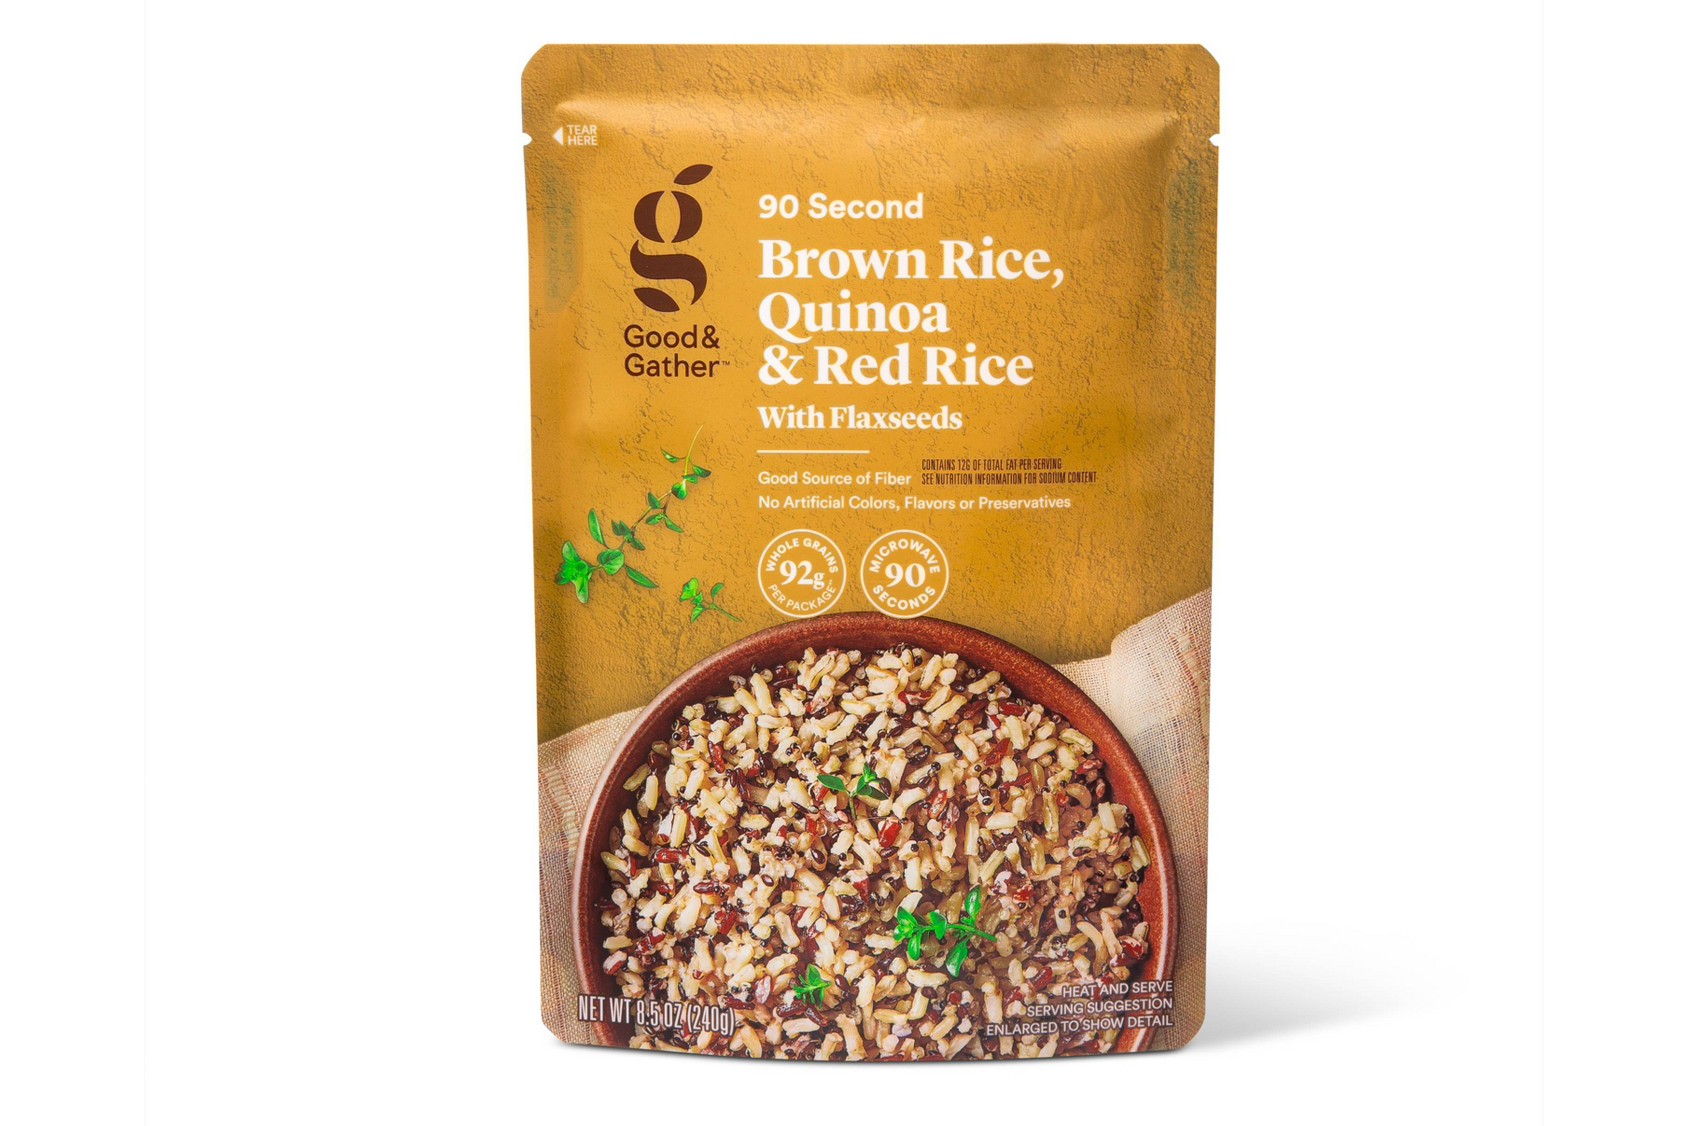 Brown Rice, Quinoa & Red Rice with Flaxseeds Microwavable Pouch - 8.5oz - Good & Gather